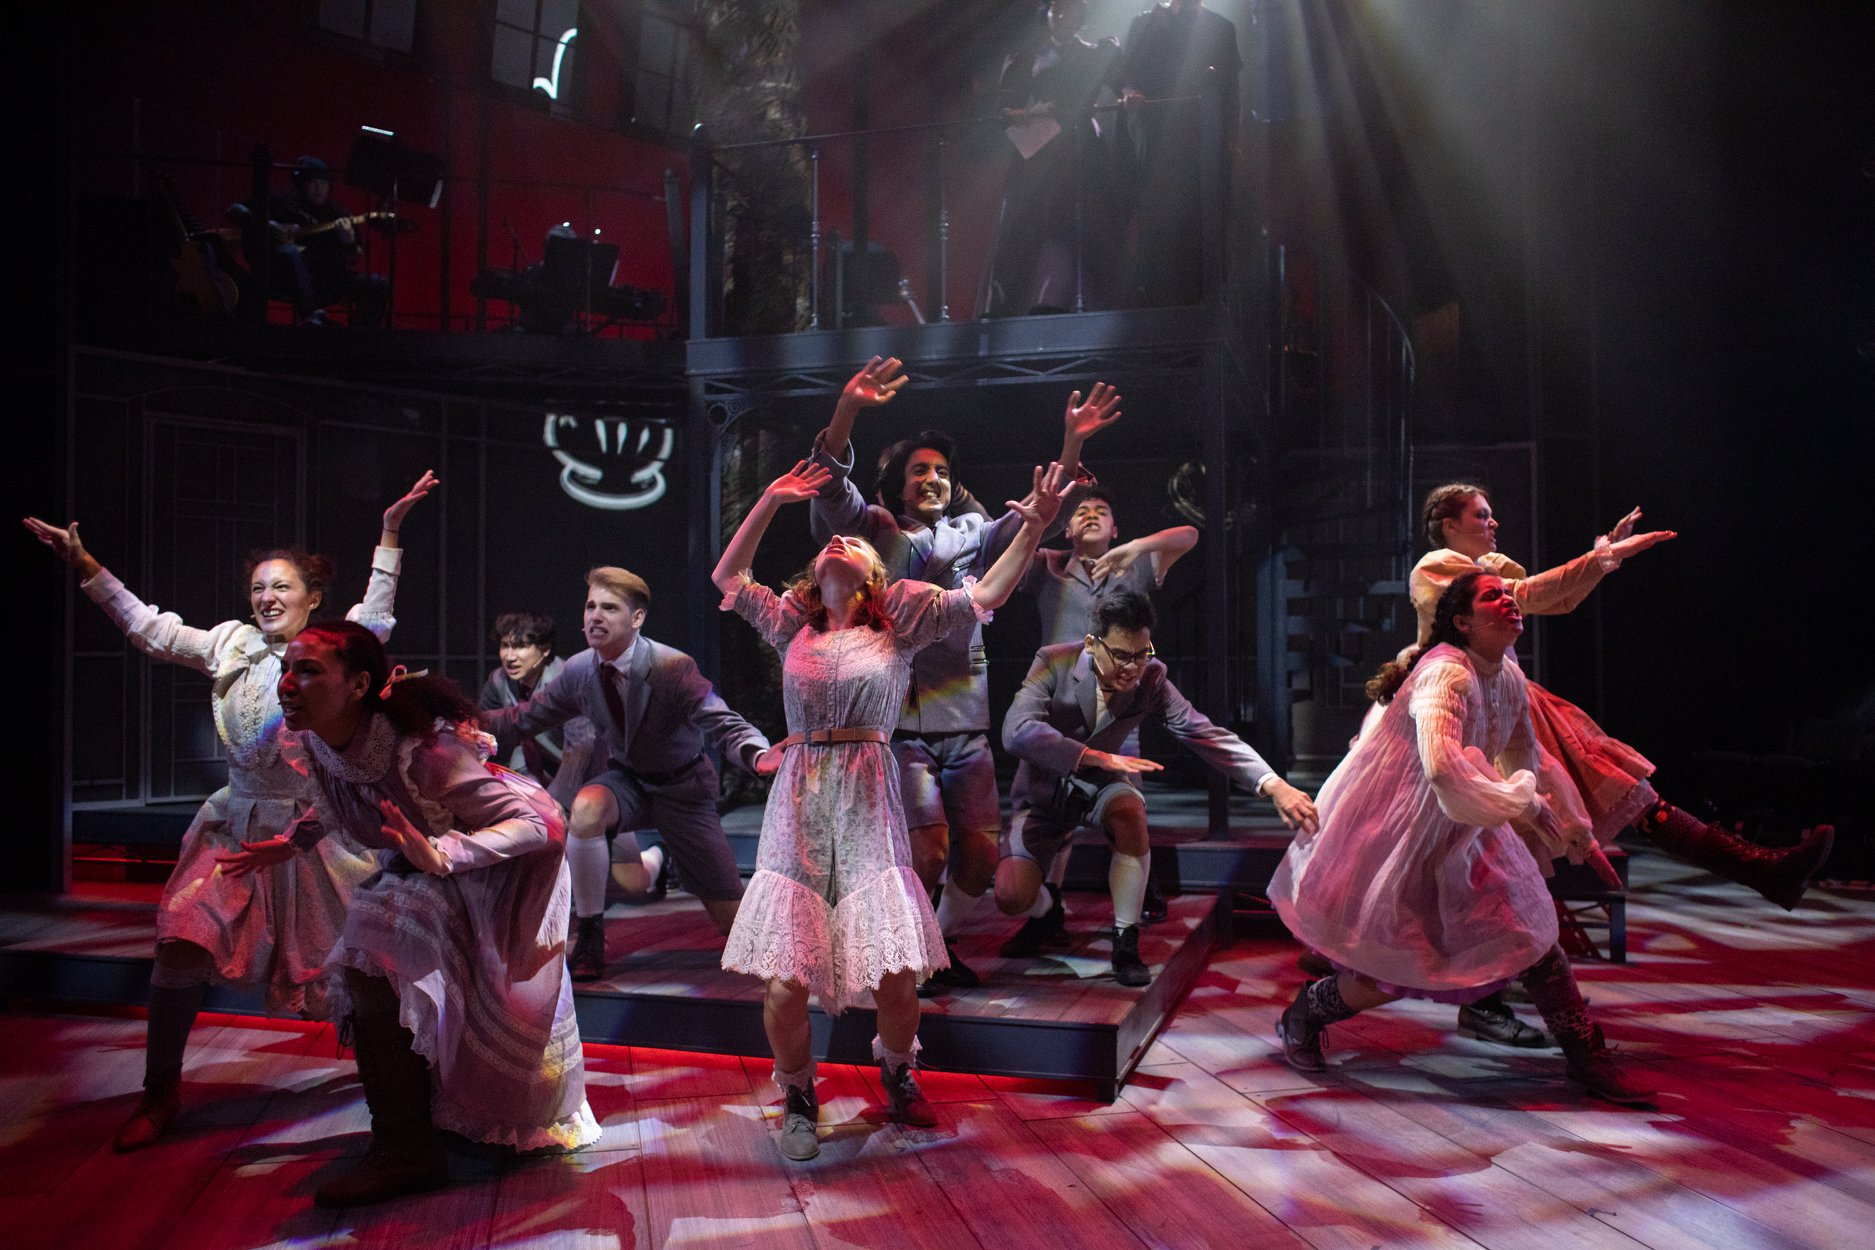 uploads/production_images/spring-awakening-ut-lawrence-peart-2019/sa_06_lawrence_peart.jpg